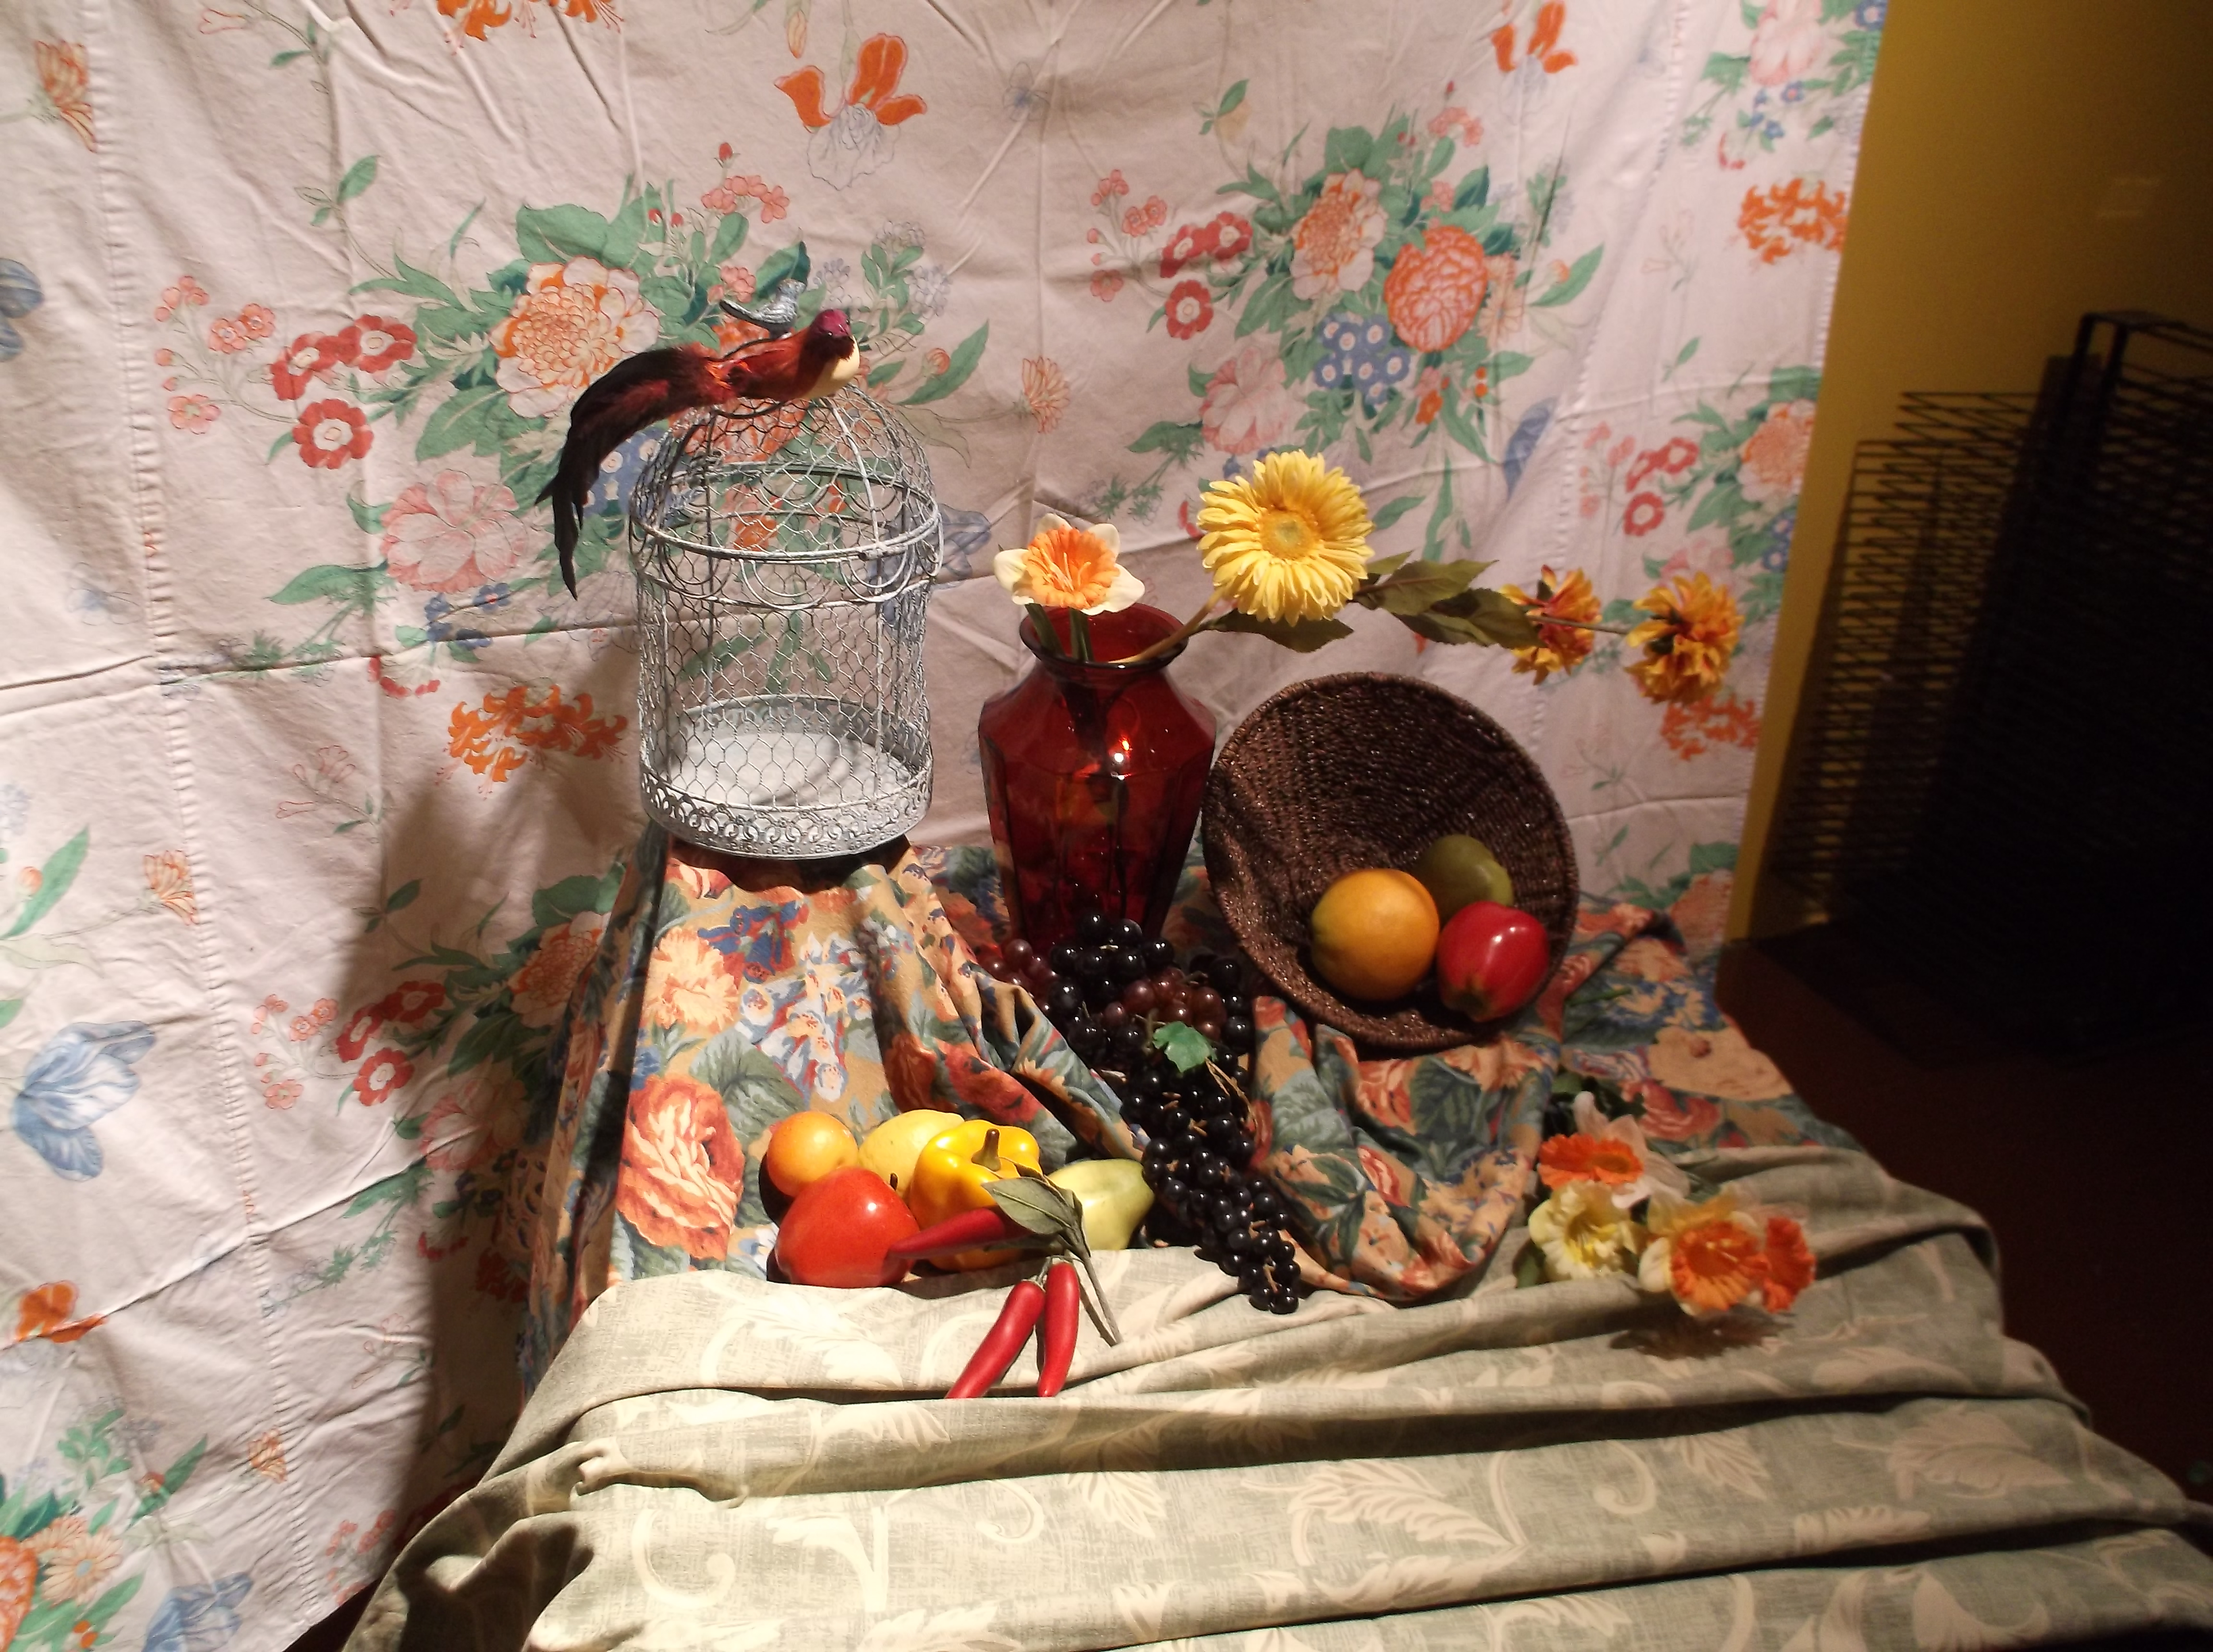 Students viewed a still life model through a viewfinder to learn about a picture's frame of reference.